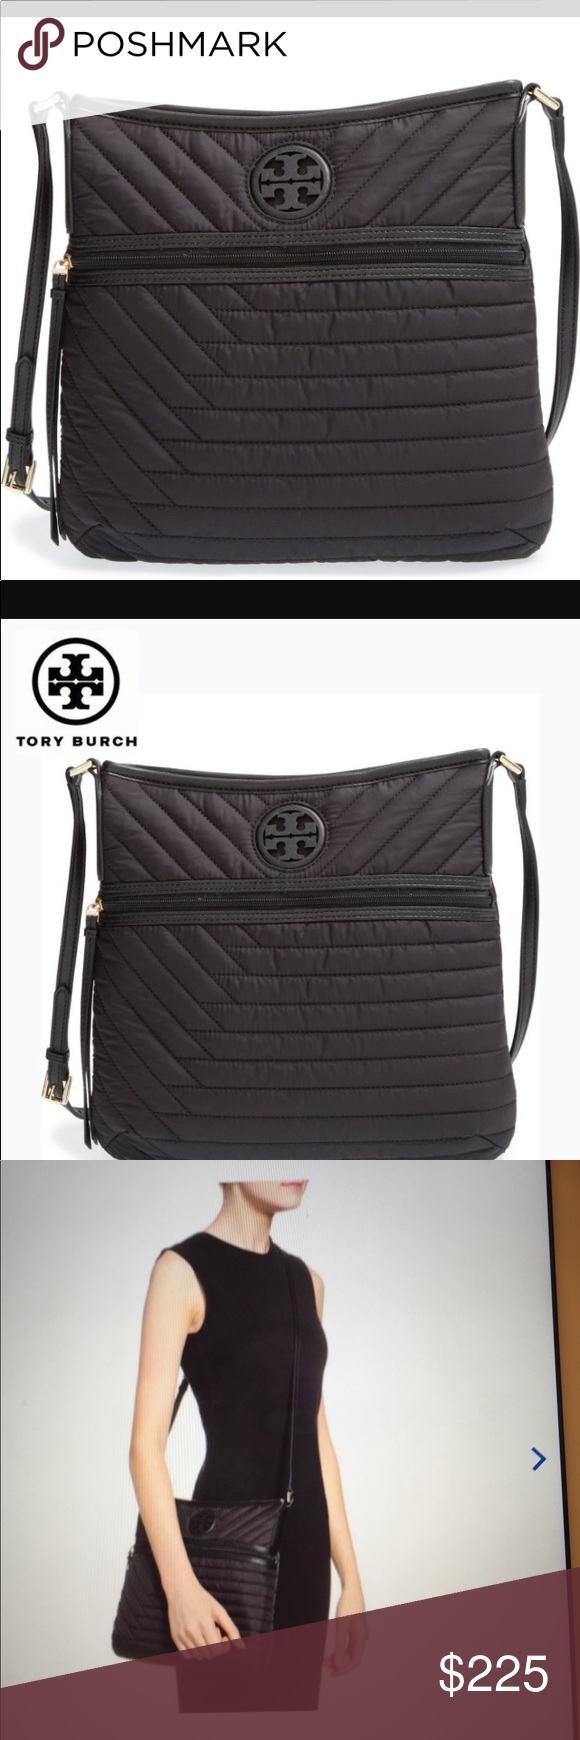 875dcd30d6a 🆕Tory Burch Quilted Nylon Swingpack in Black. NWT Lightweight and  adorable....this Tory Burch crossbody bag will become your favorite go-to  bag.